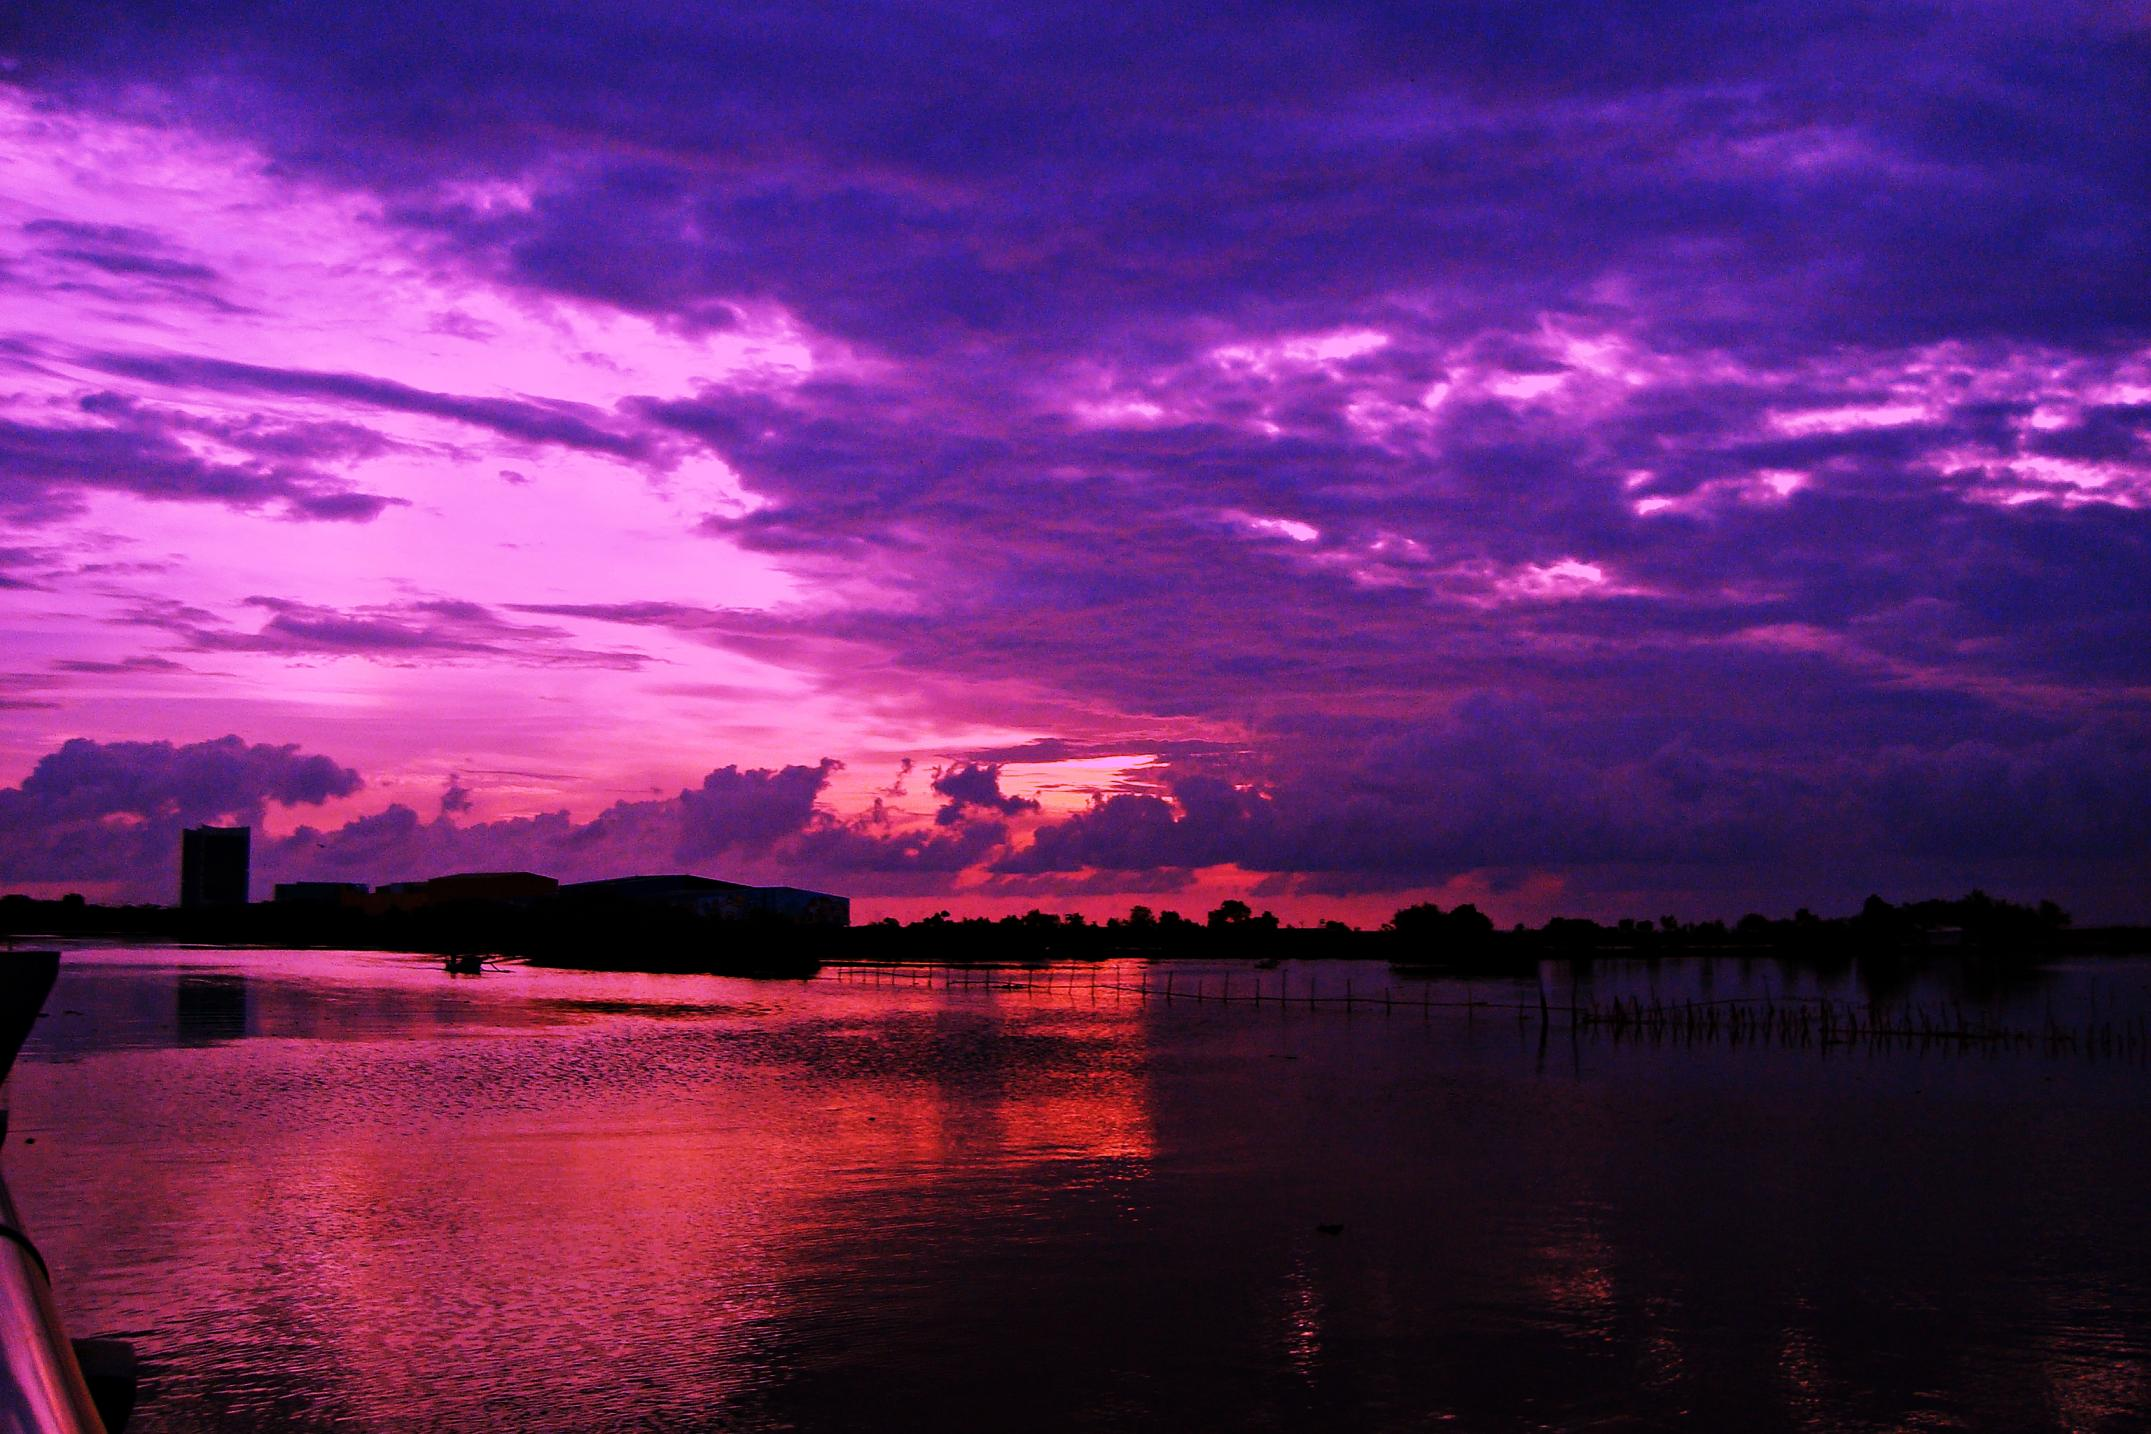 beautiful sky colors by lameindp on DeviantArt